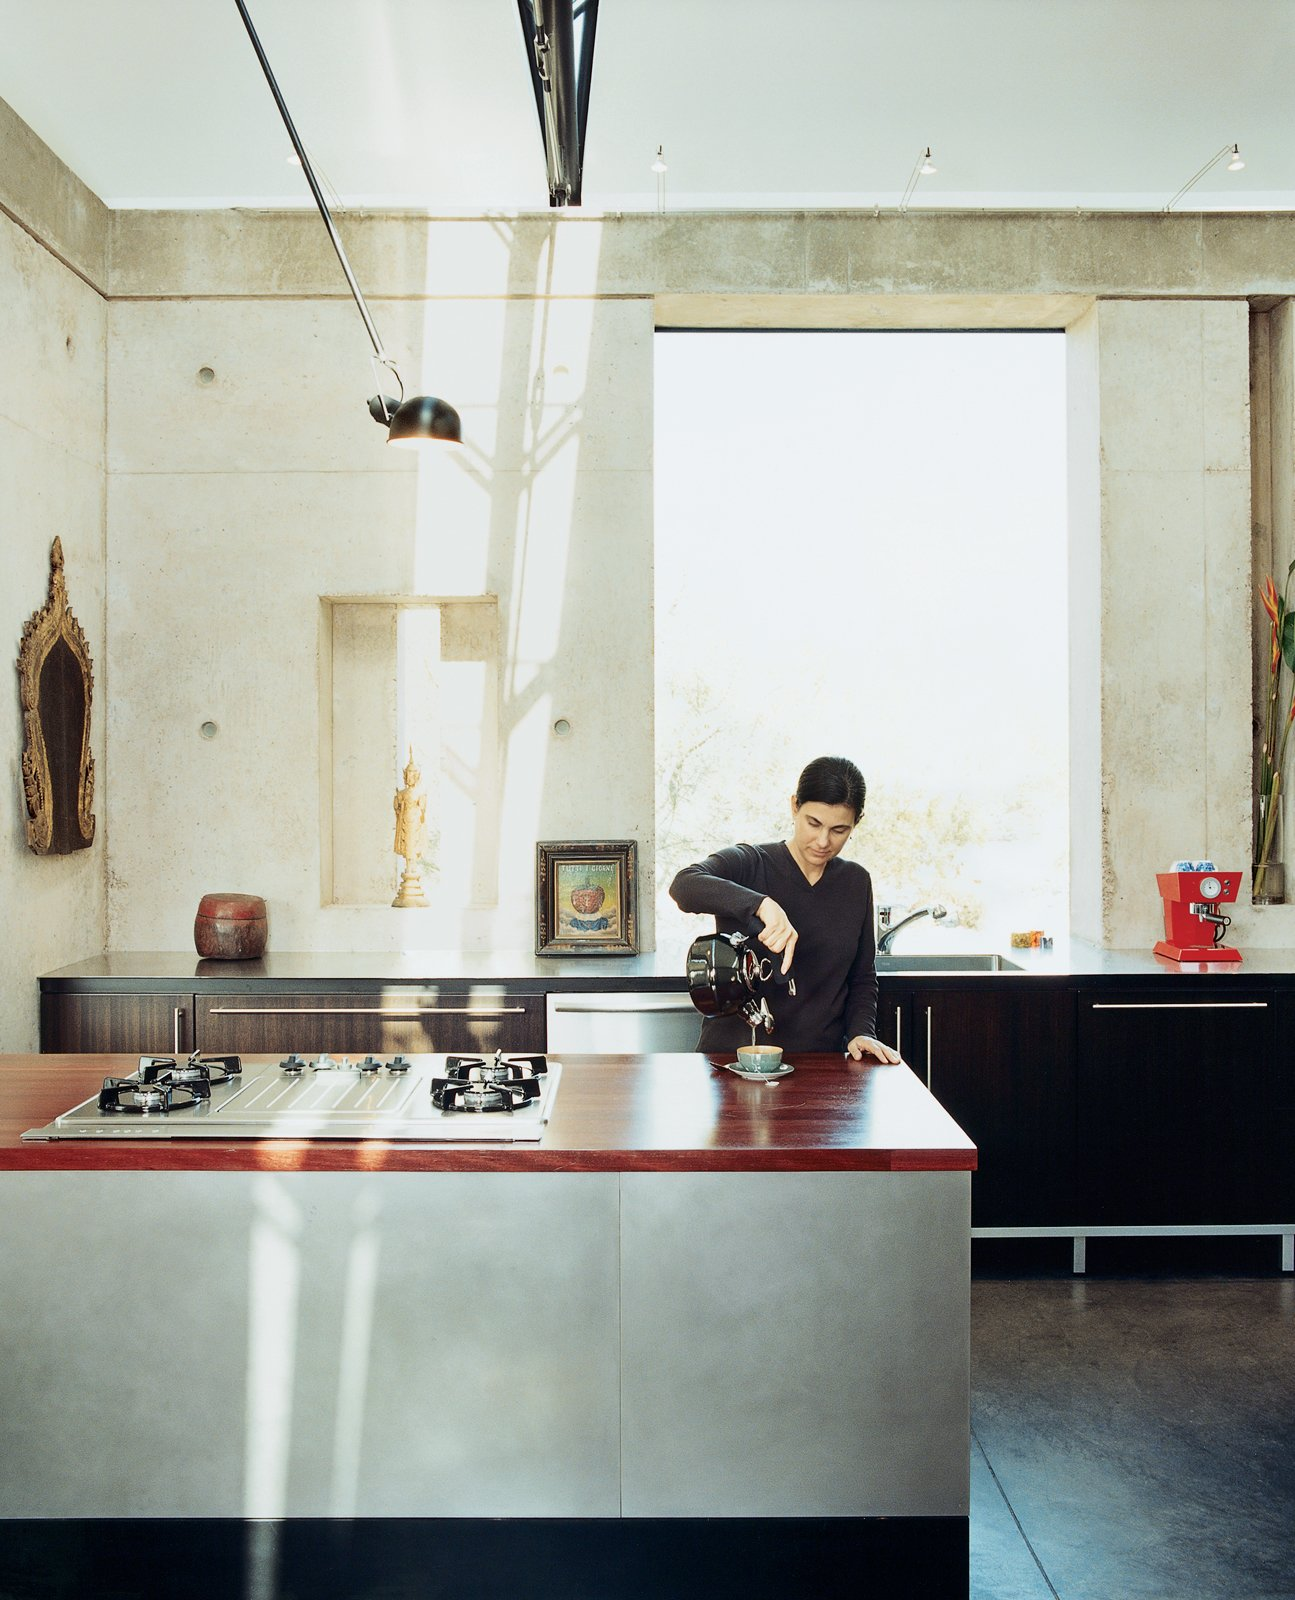 Kitchen, Wood Counter, Concrete Floor, Cooktops, Ceiling Lighting, Drop In Sink, Stone Slab Backsplashe, Dishwasher, and Accent Lighting The House of Earth + Light had been featured in the pages of the New York Times and on the cover of Dwell's premiere issue, and was revisited years later. In the kitchen, an elegant palette of materials defines the open space. The rear counter is sanded stainless steel; the island counter is Purpleheart (an exotic hardwood) with a range by Dacor.  Photos from Love's Labors Found